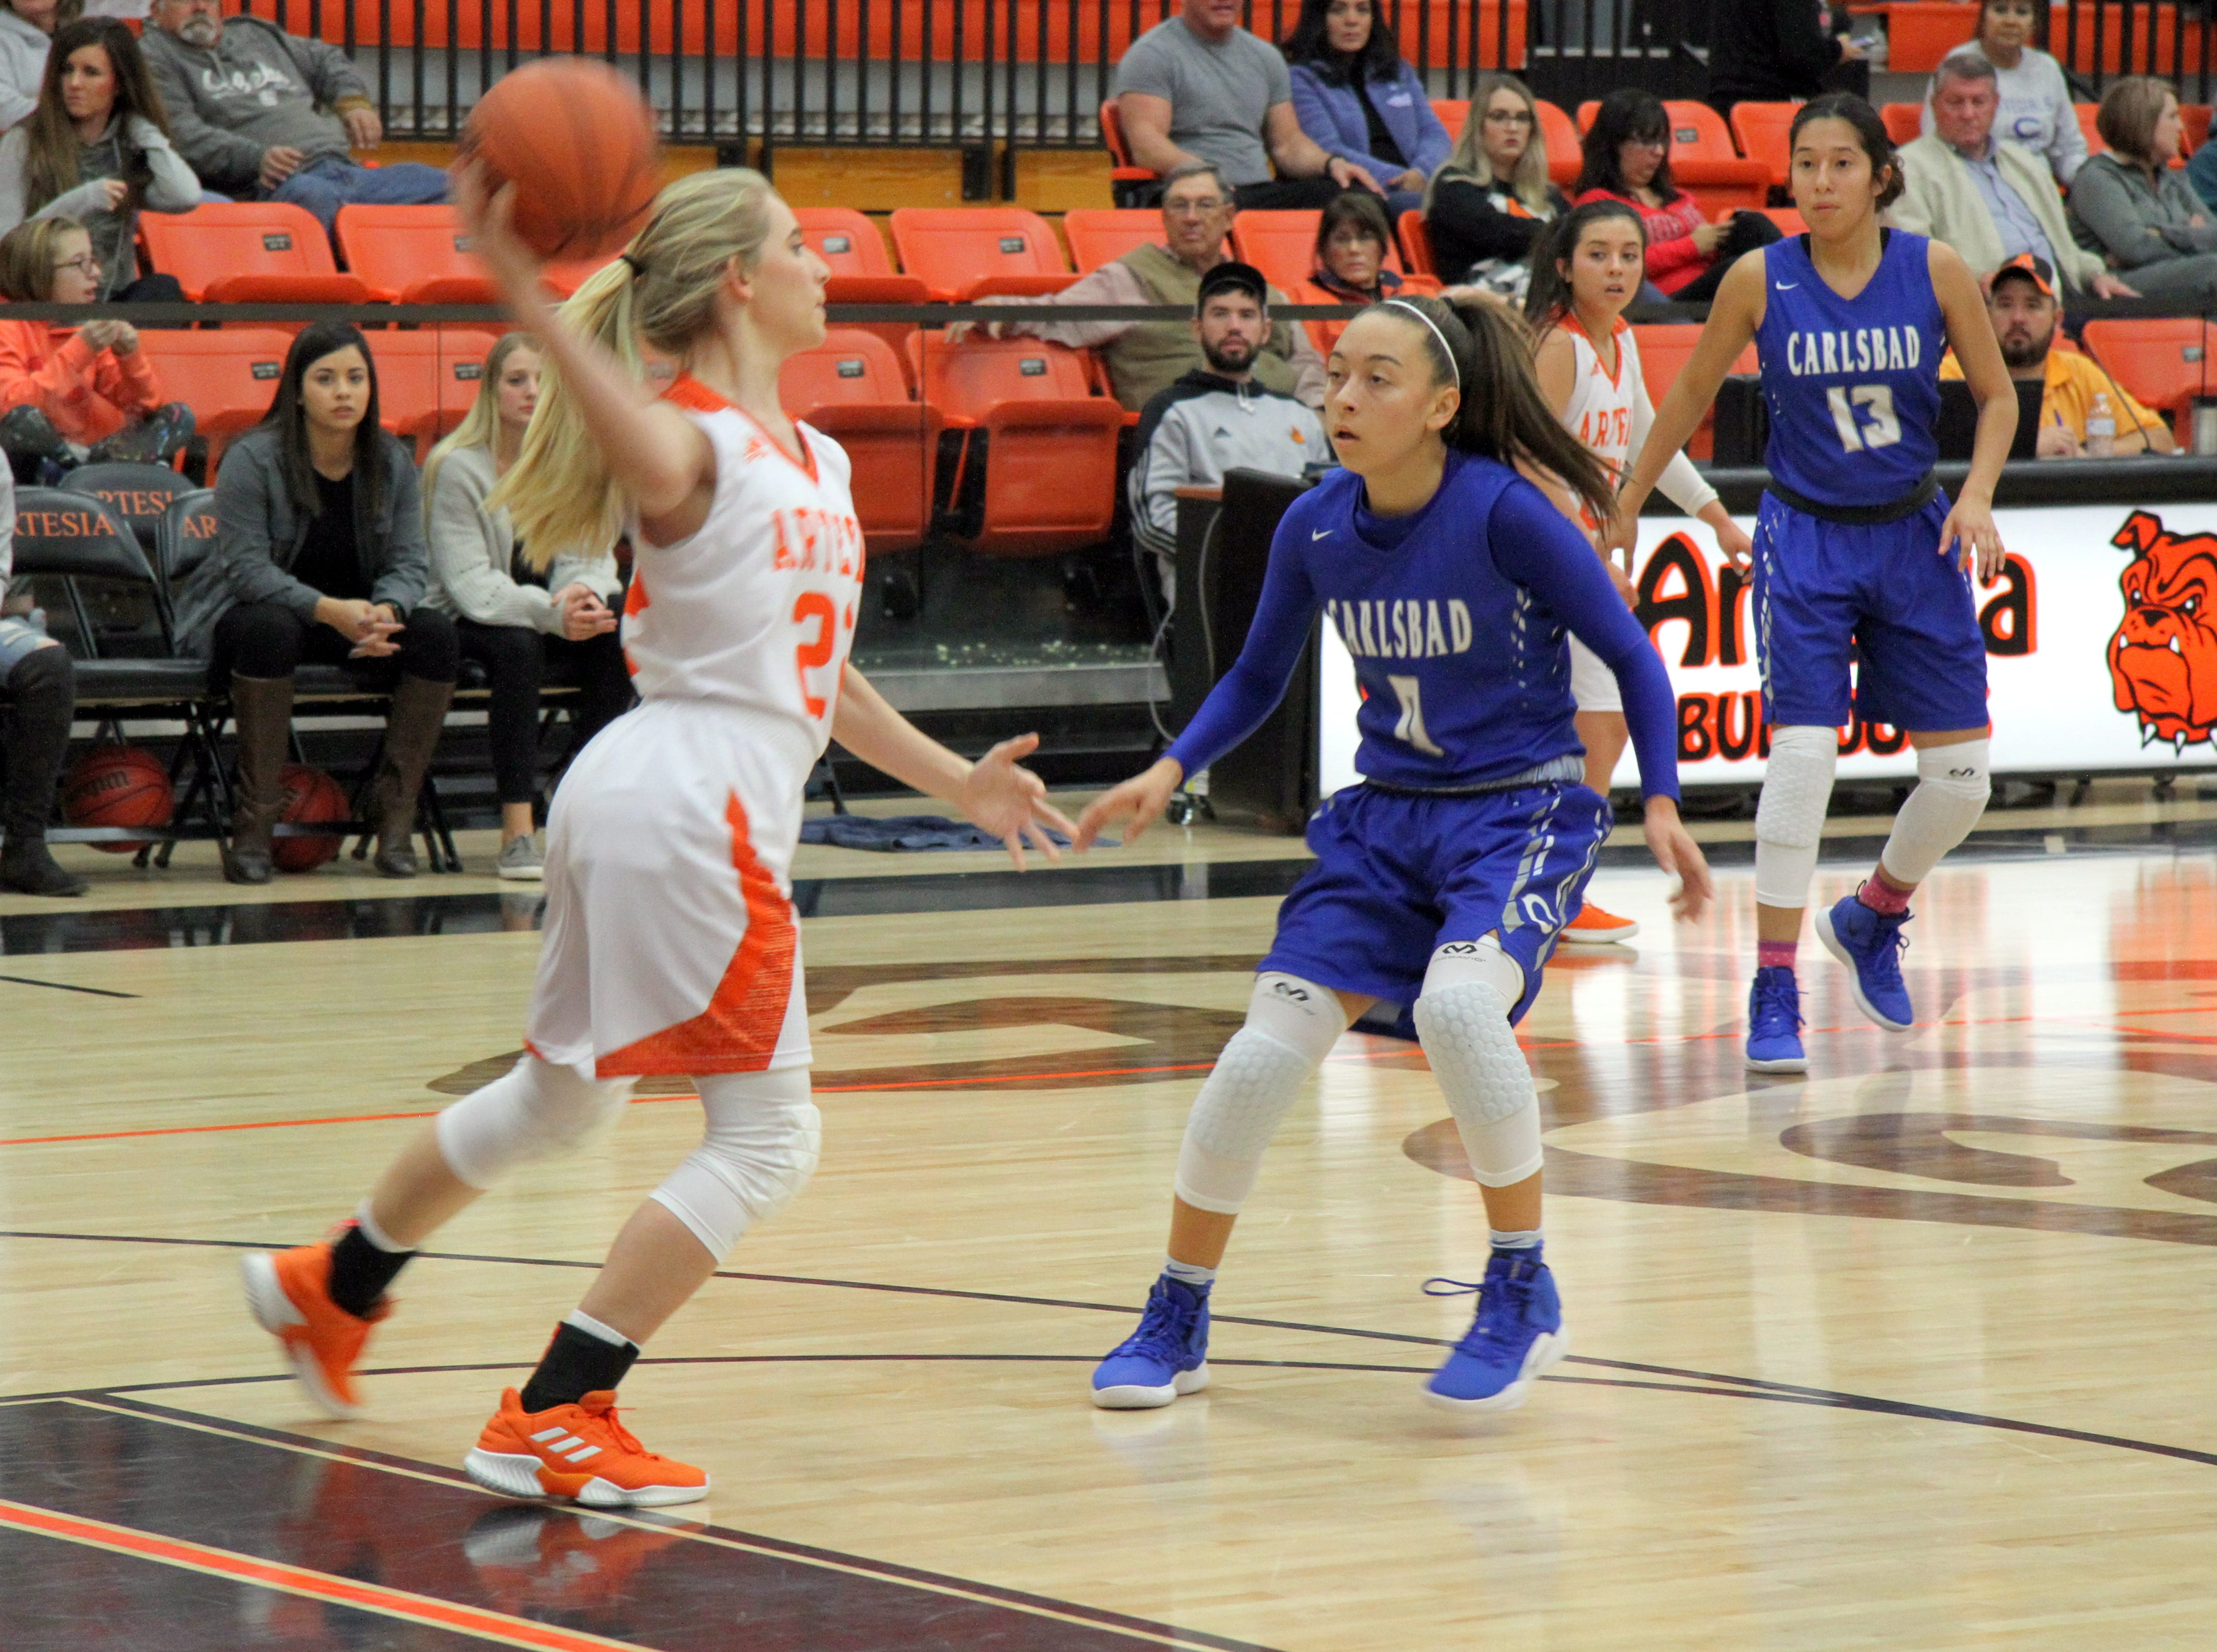 Artesia's Faith Evans (22) looks for an open teammate while Carlsbad's Bailee Molina guards her during Saturday's third-place game in Artesia.